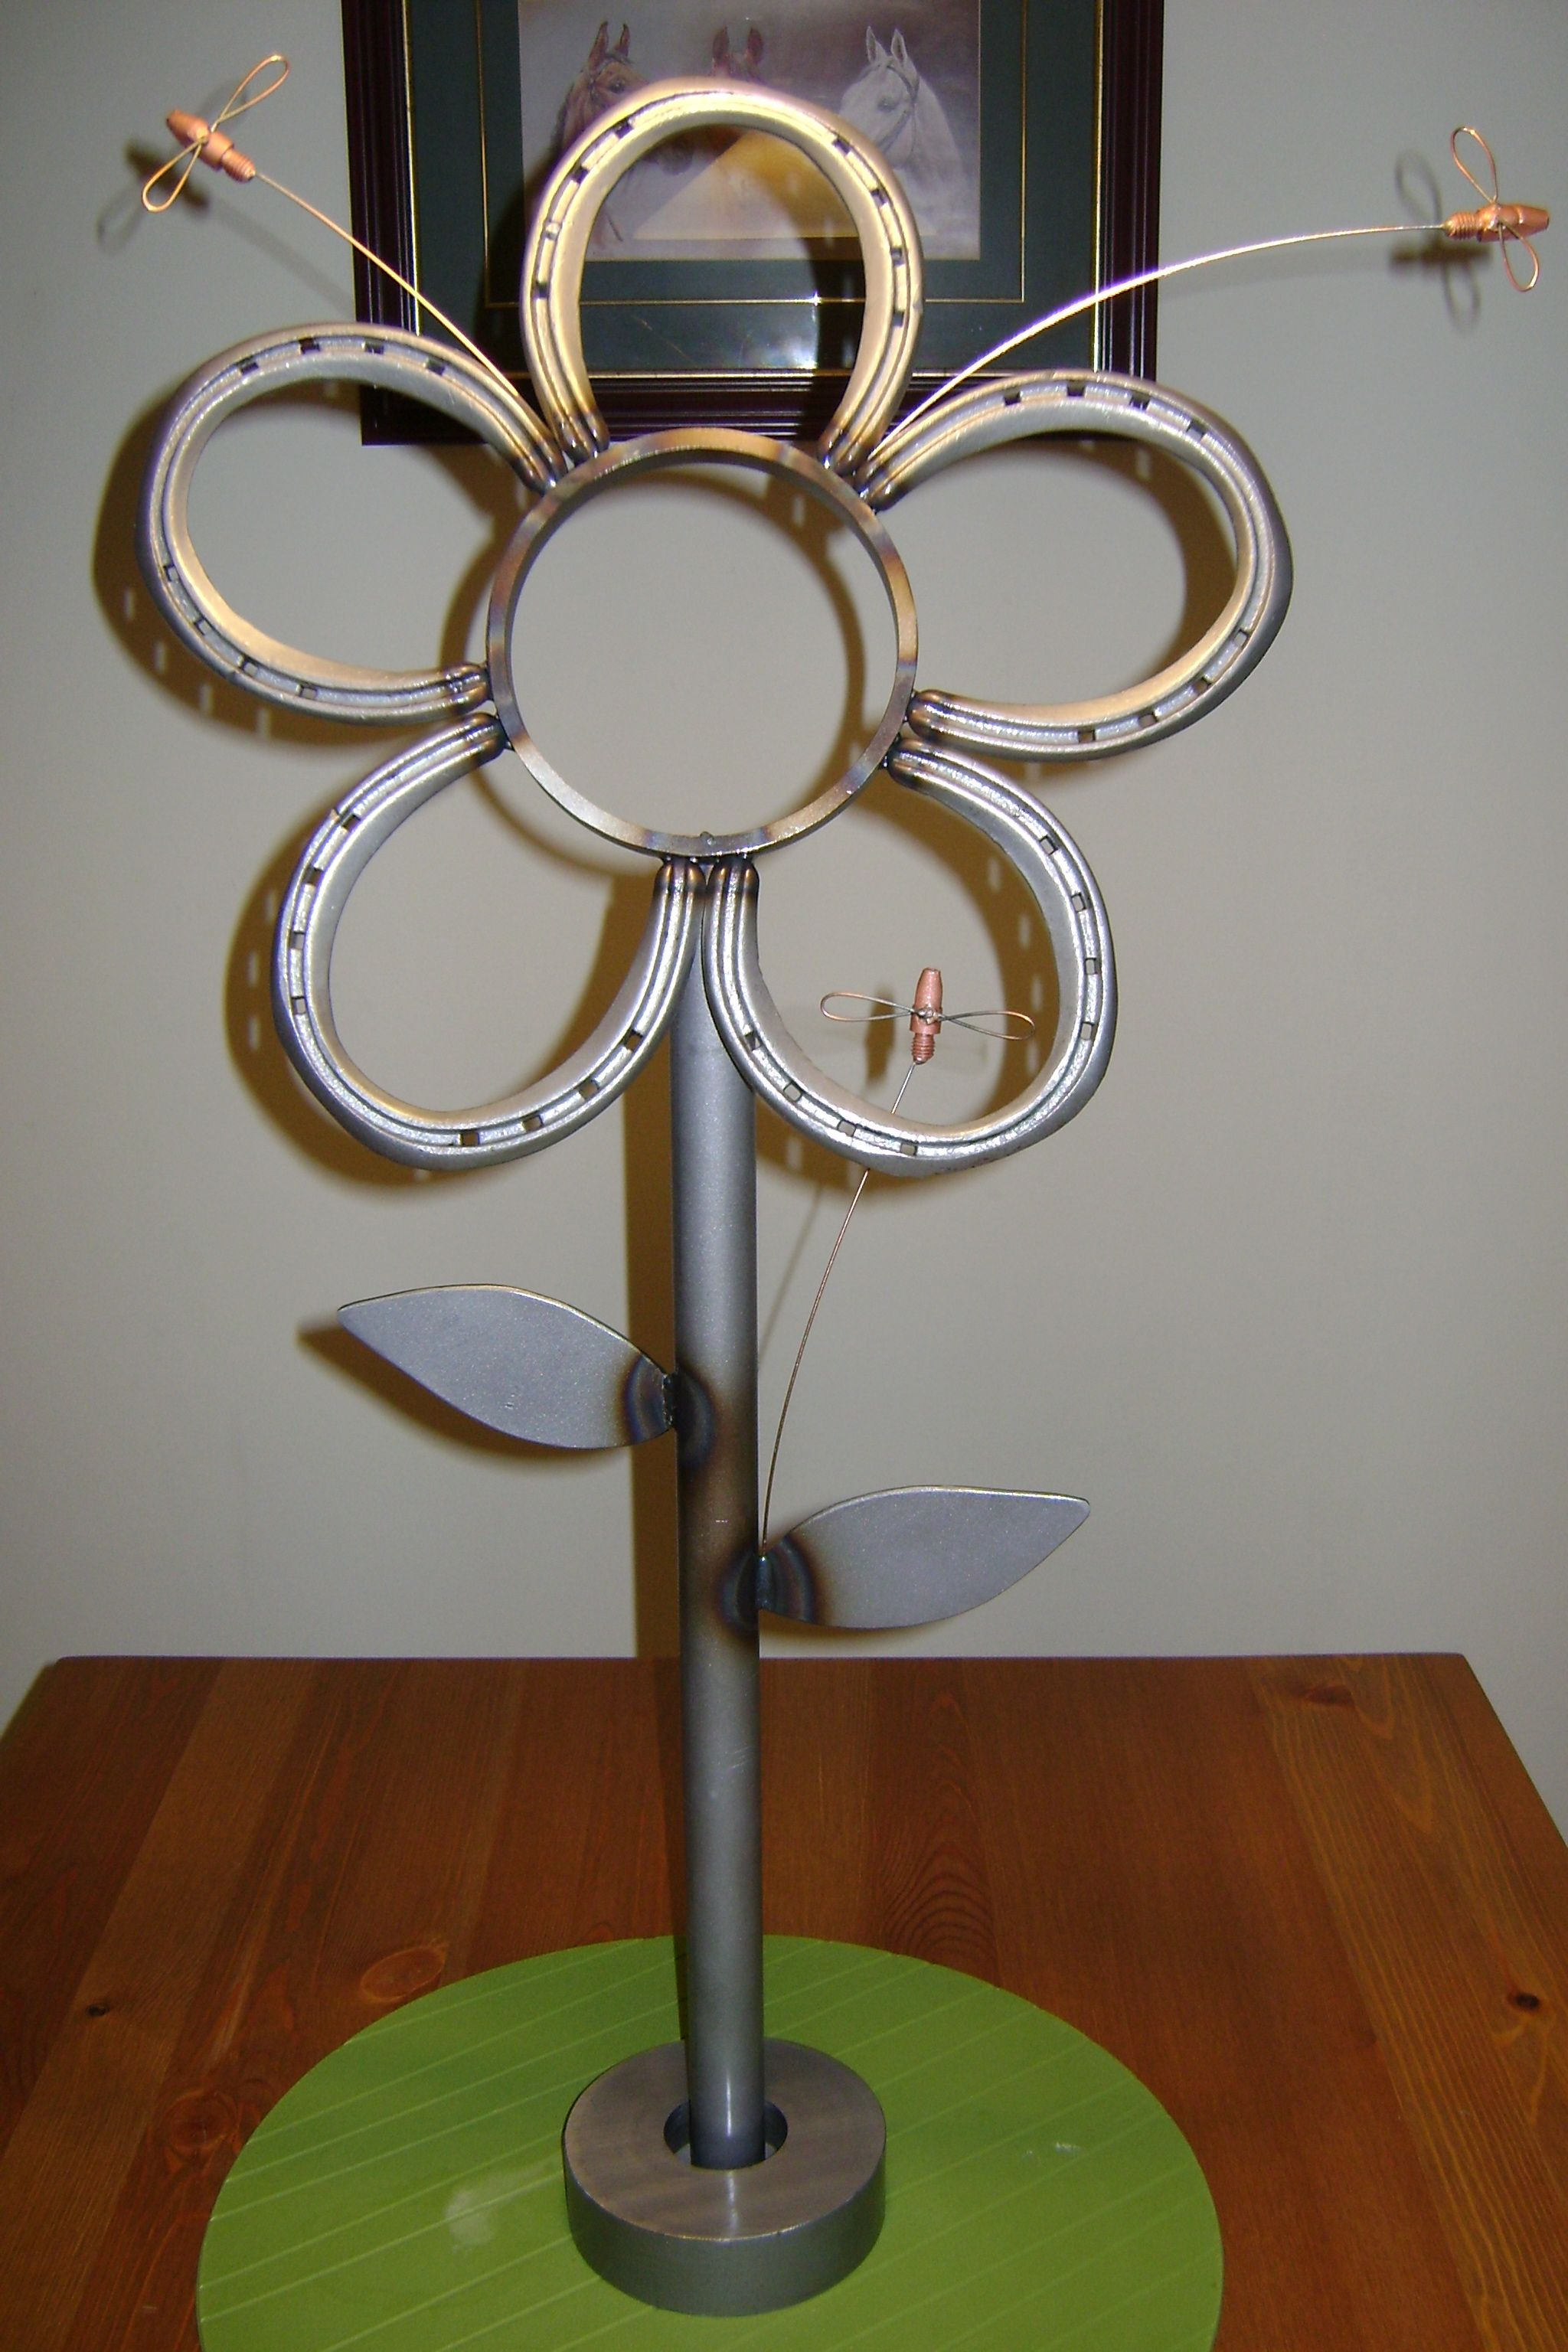 Horseshoe arts and crafts - Image Detail For Miller Welding Projects Idea Gallery Horse Shoe Flower